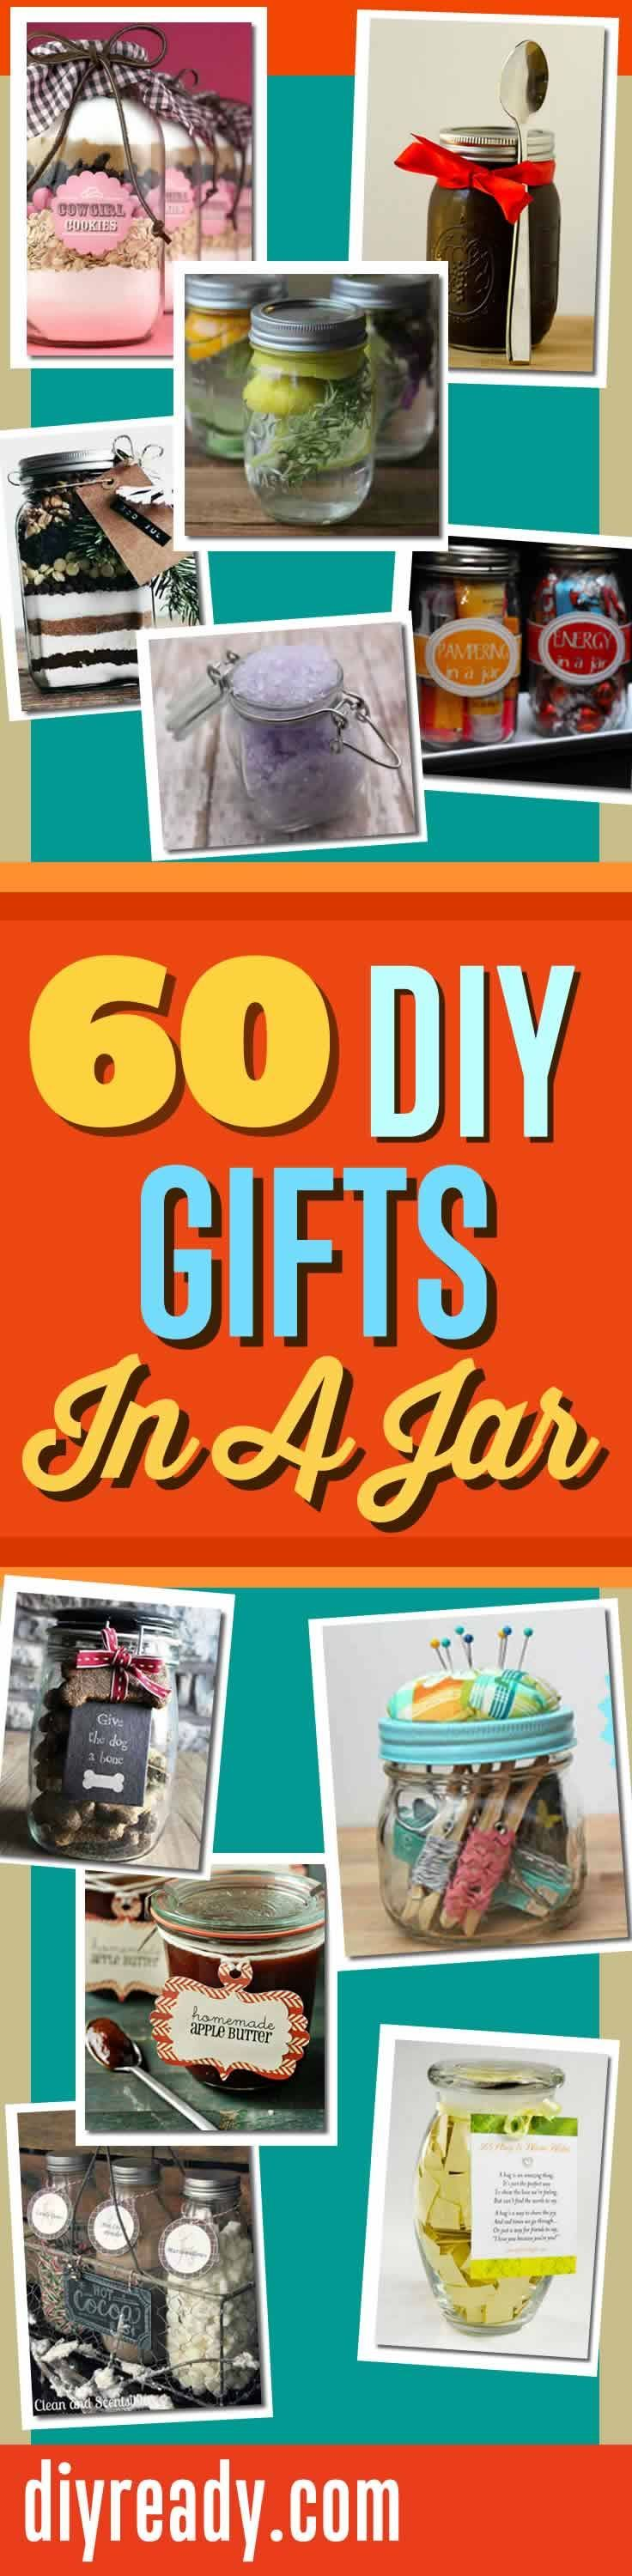 DIY Christmas Gifts in A Jar - Mason Jar Ideas  and other awesome things you can make in a jar. Best Holiday Gifts and Crafts http://diyready.com/60-cute-and-easy-diy-gifts-in-a-jar-christmas-gift-ideas/